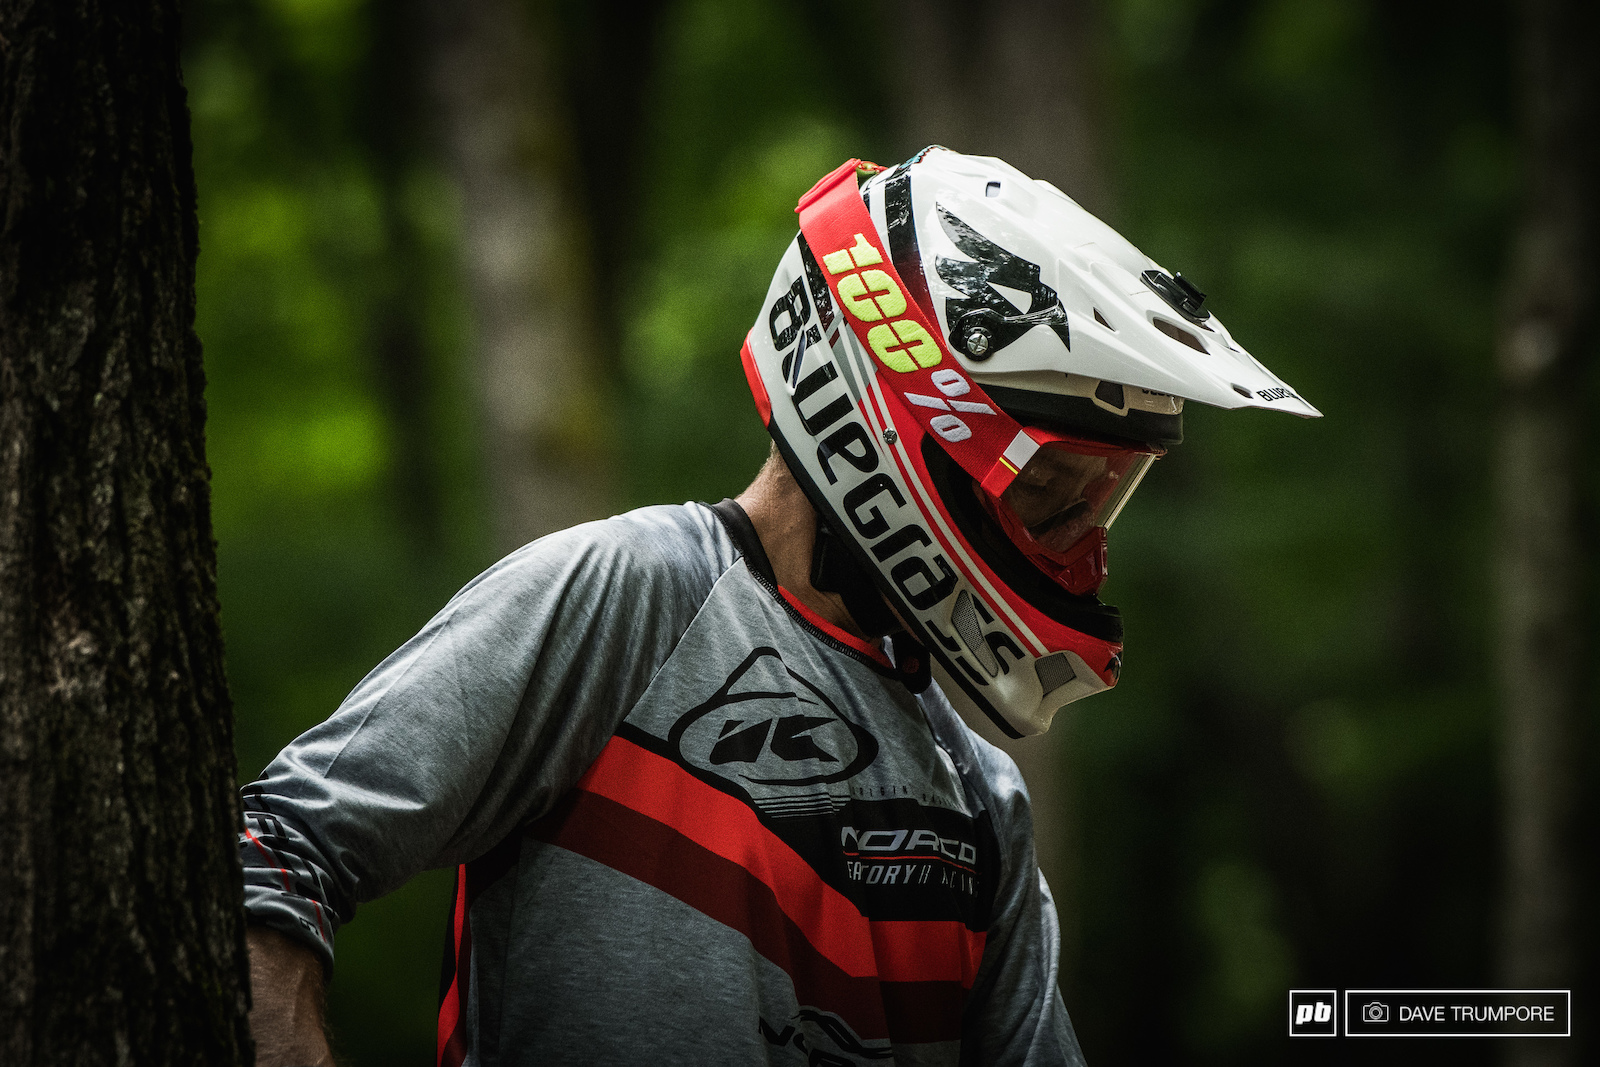 Sam Blenkinsop was one of a host of riders who had a long look at some of the rock gardens that seam to have grown in size this year.